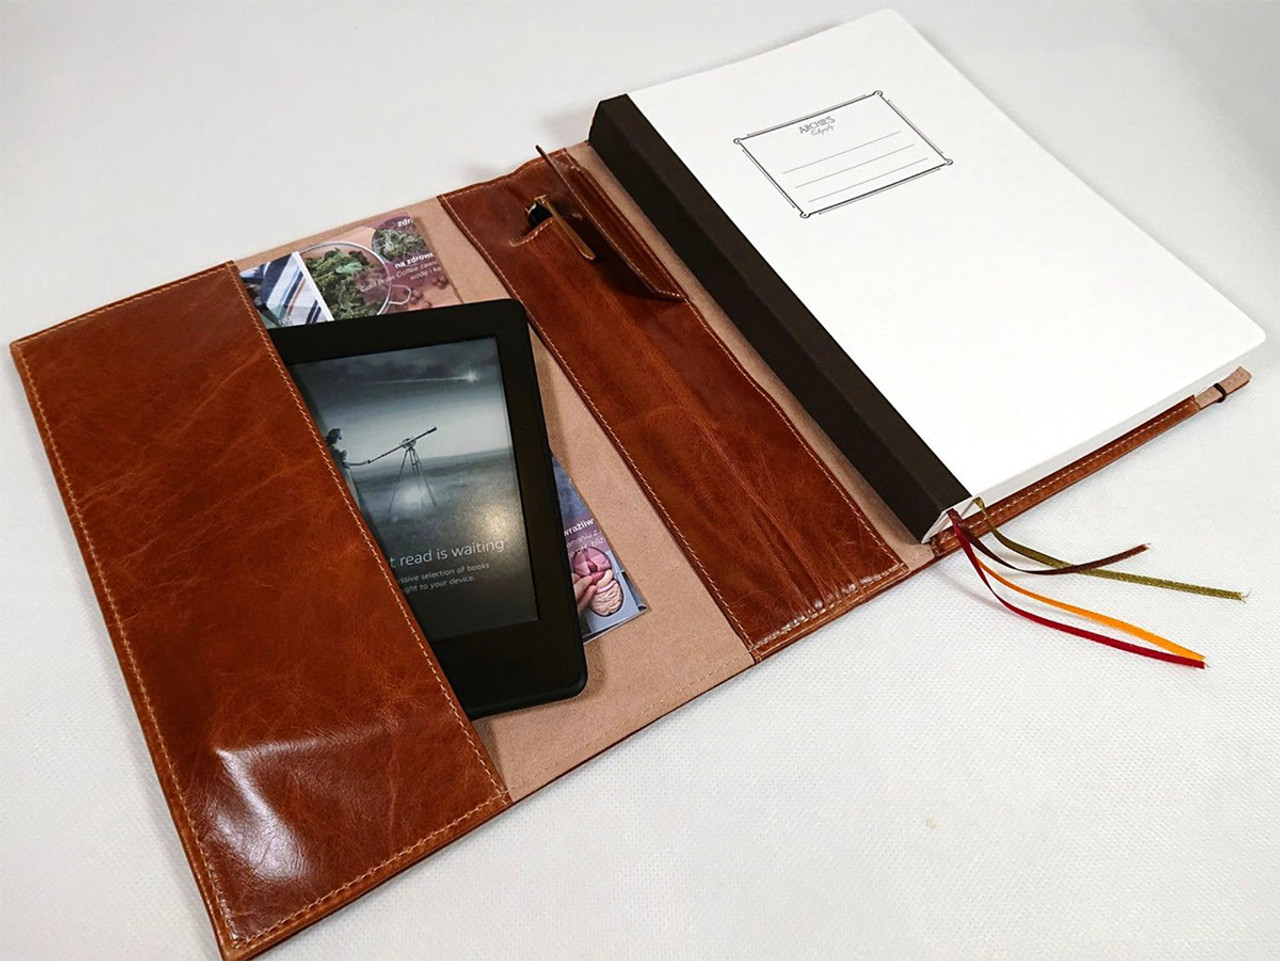 Archie's notebook and leather cover, open